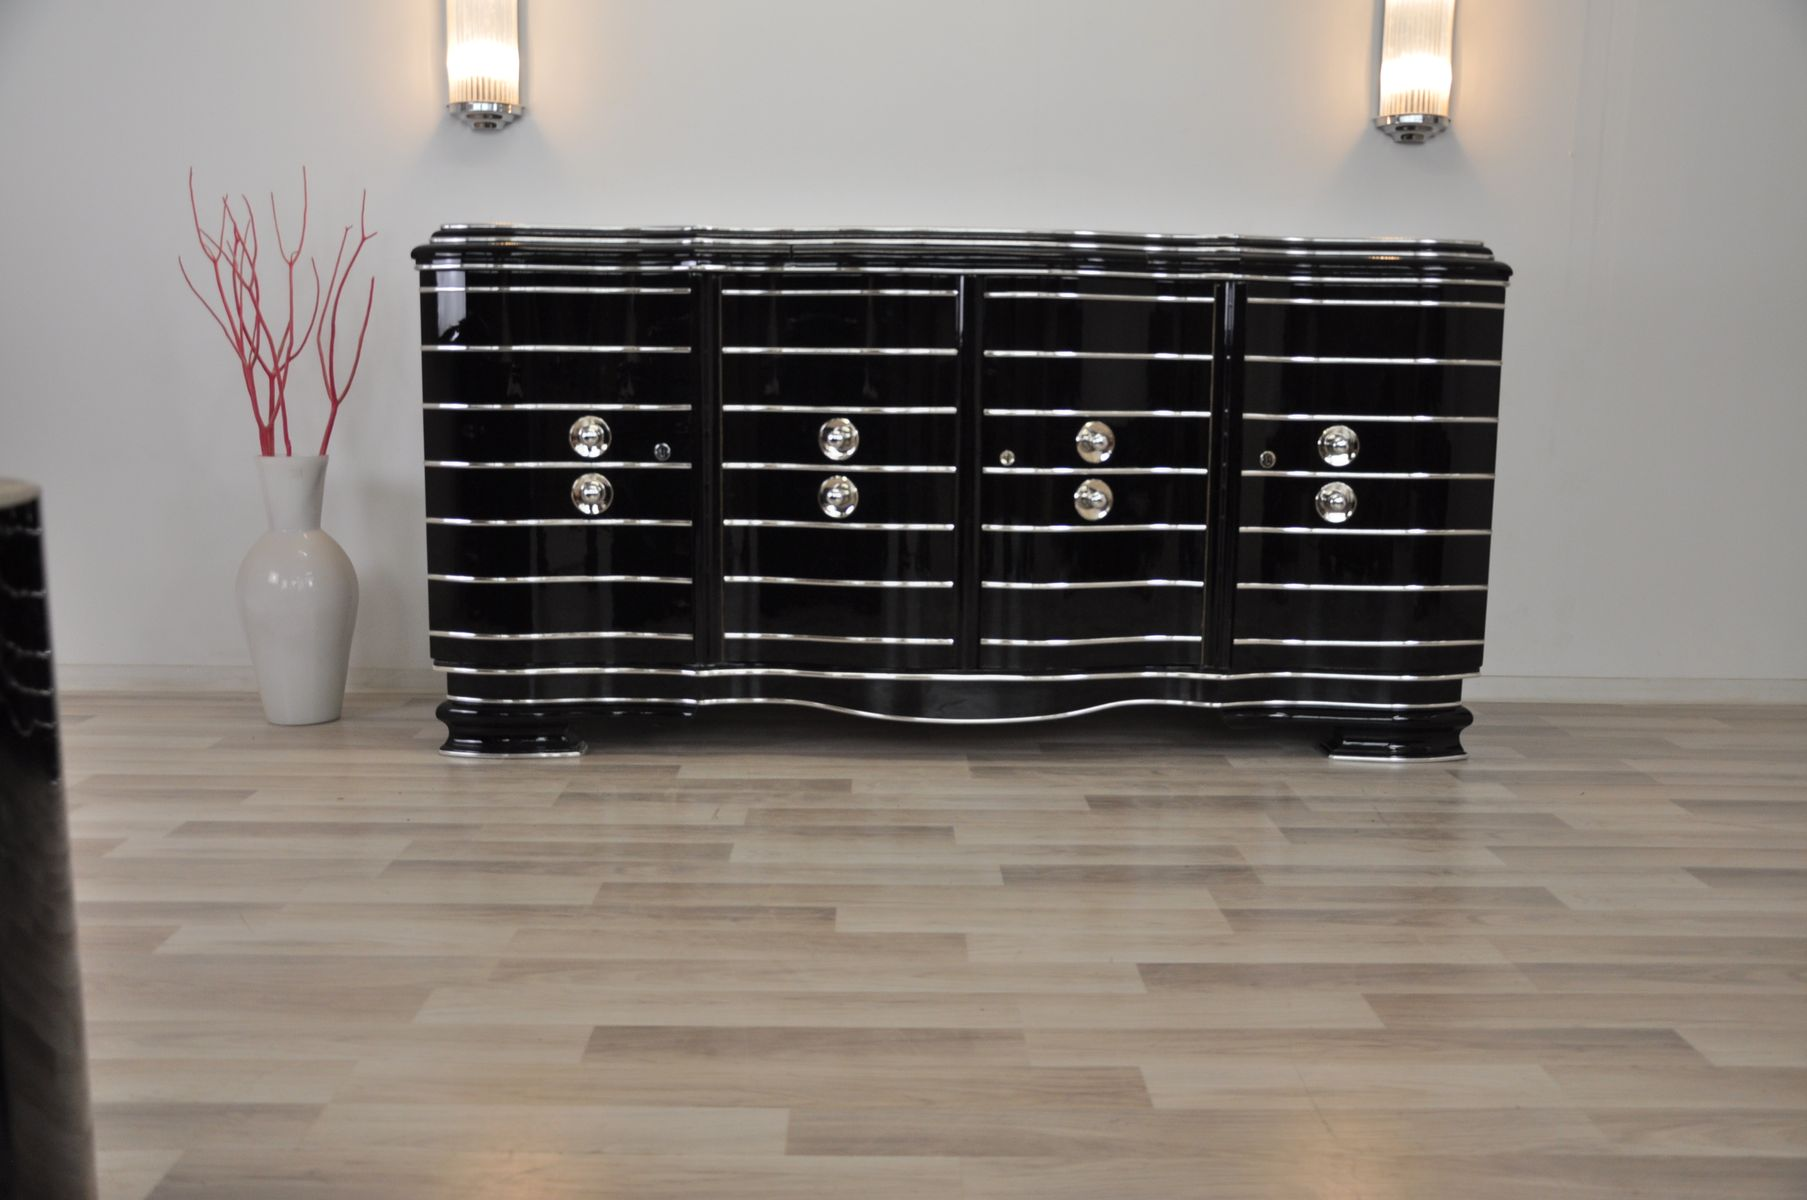 Art Deco Chrom Sideboard, 1920er